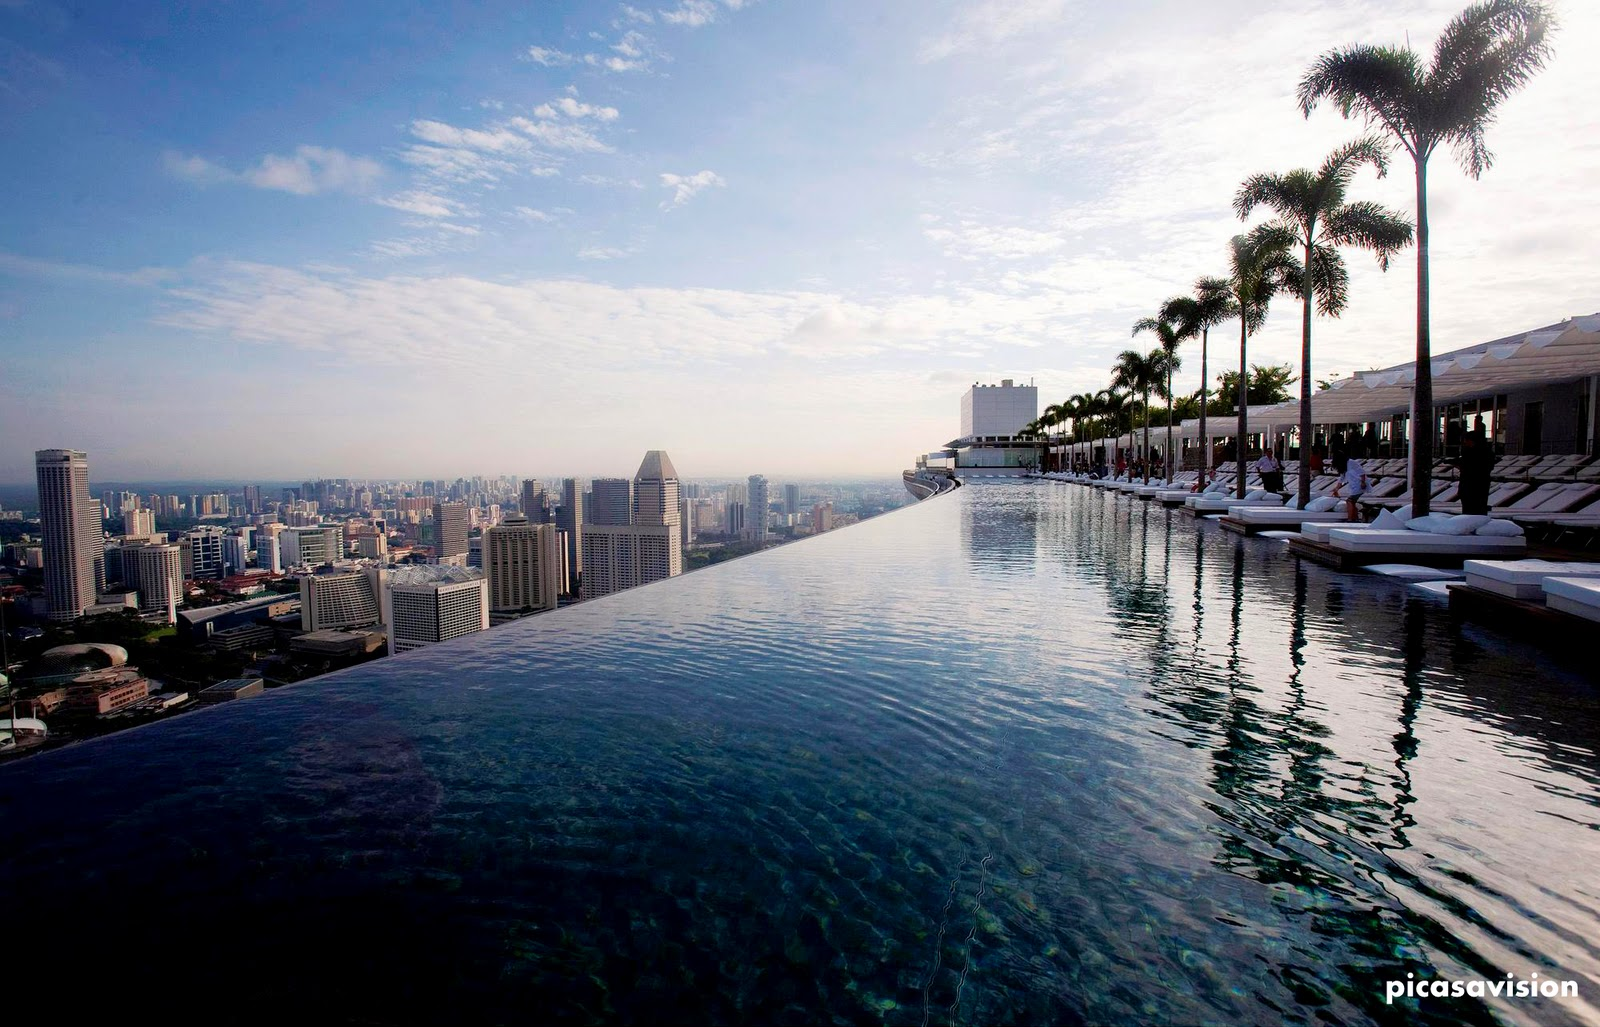 Picasa Vision Swimming Pool On 55th Floor Marina Bay